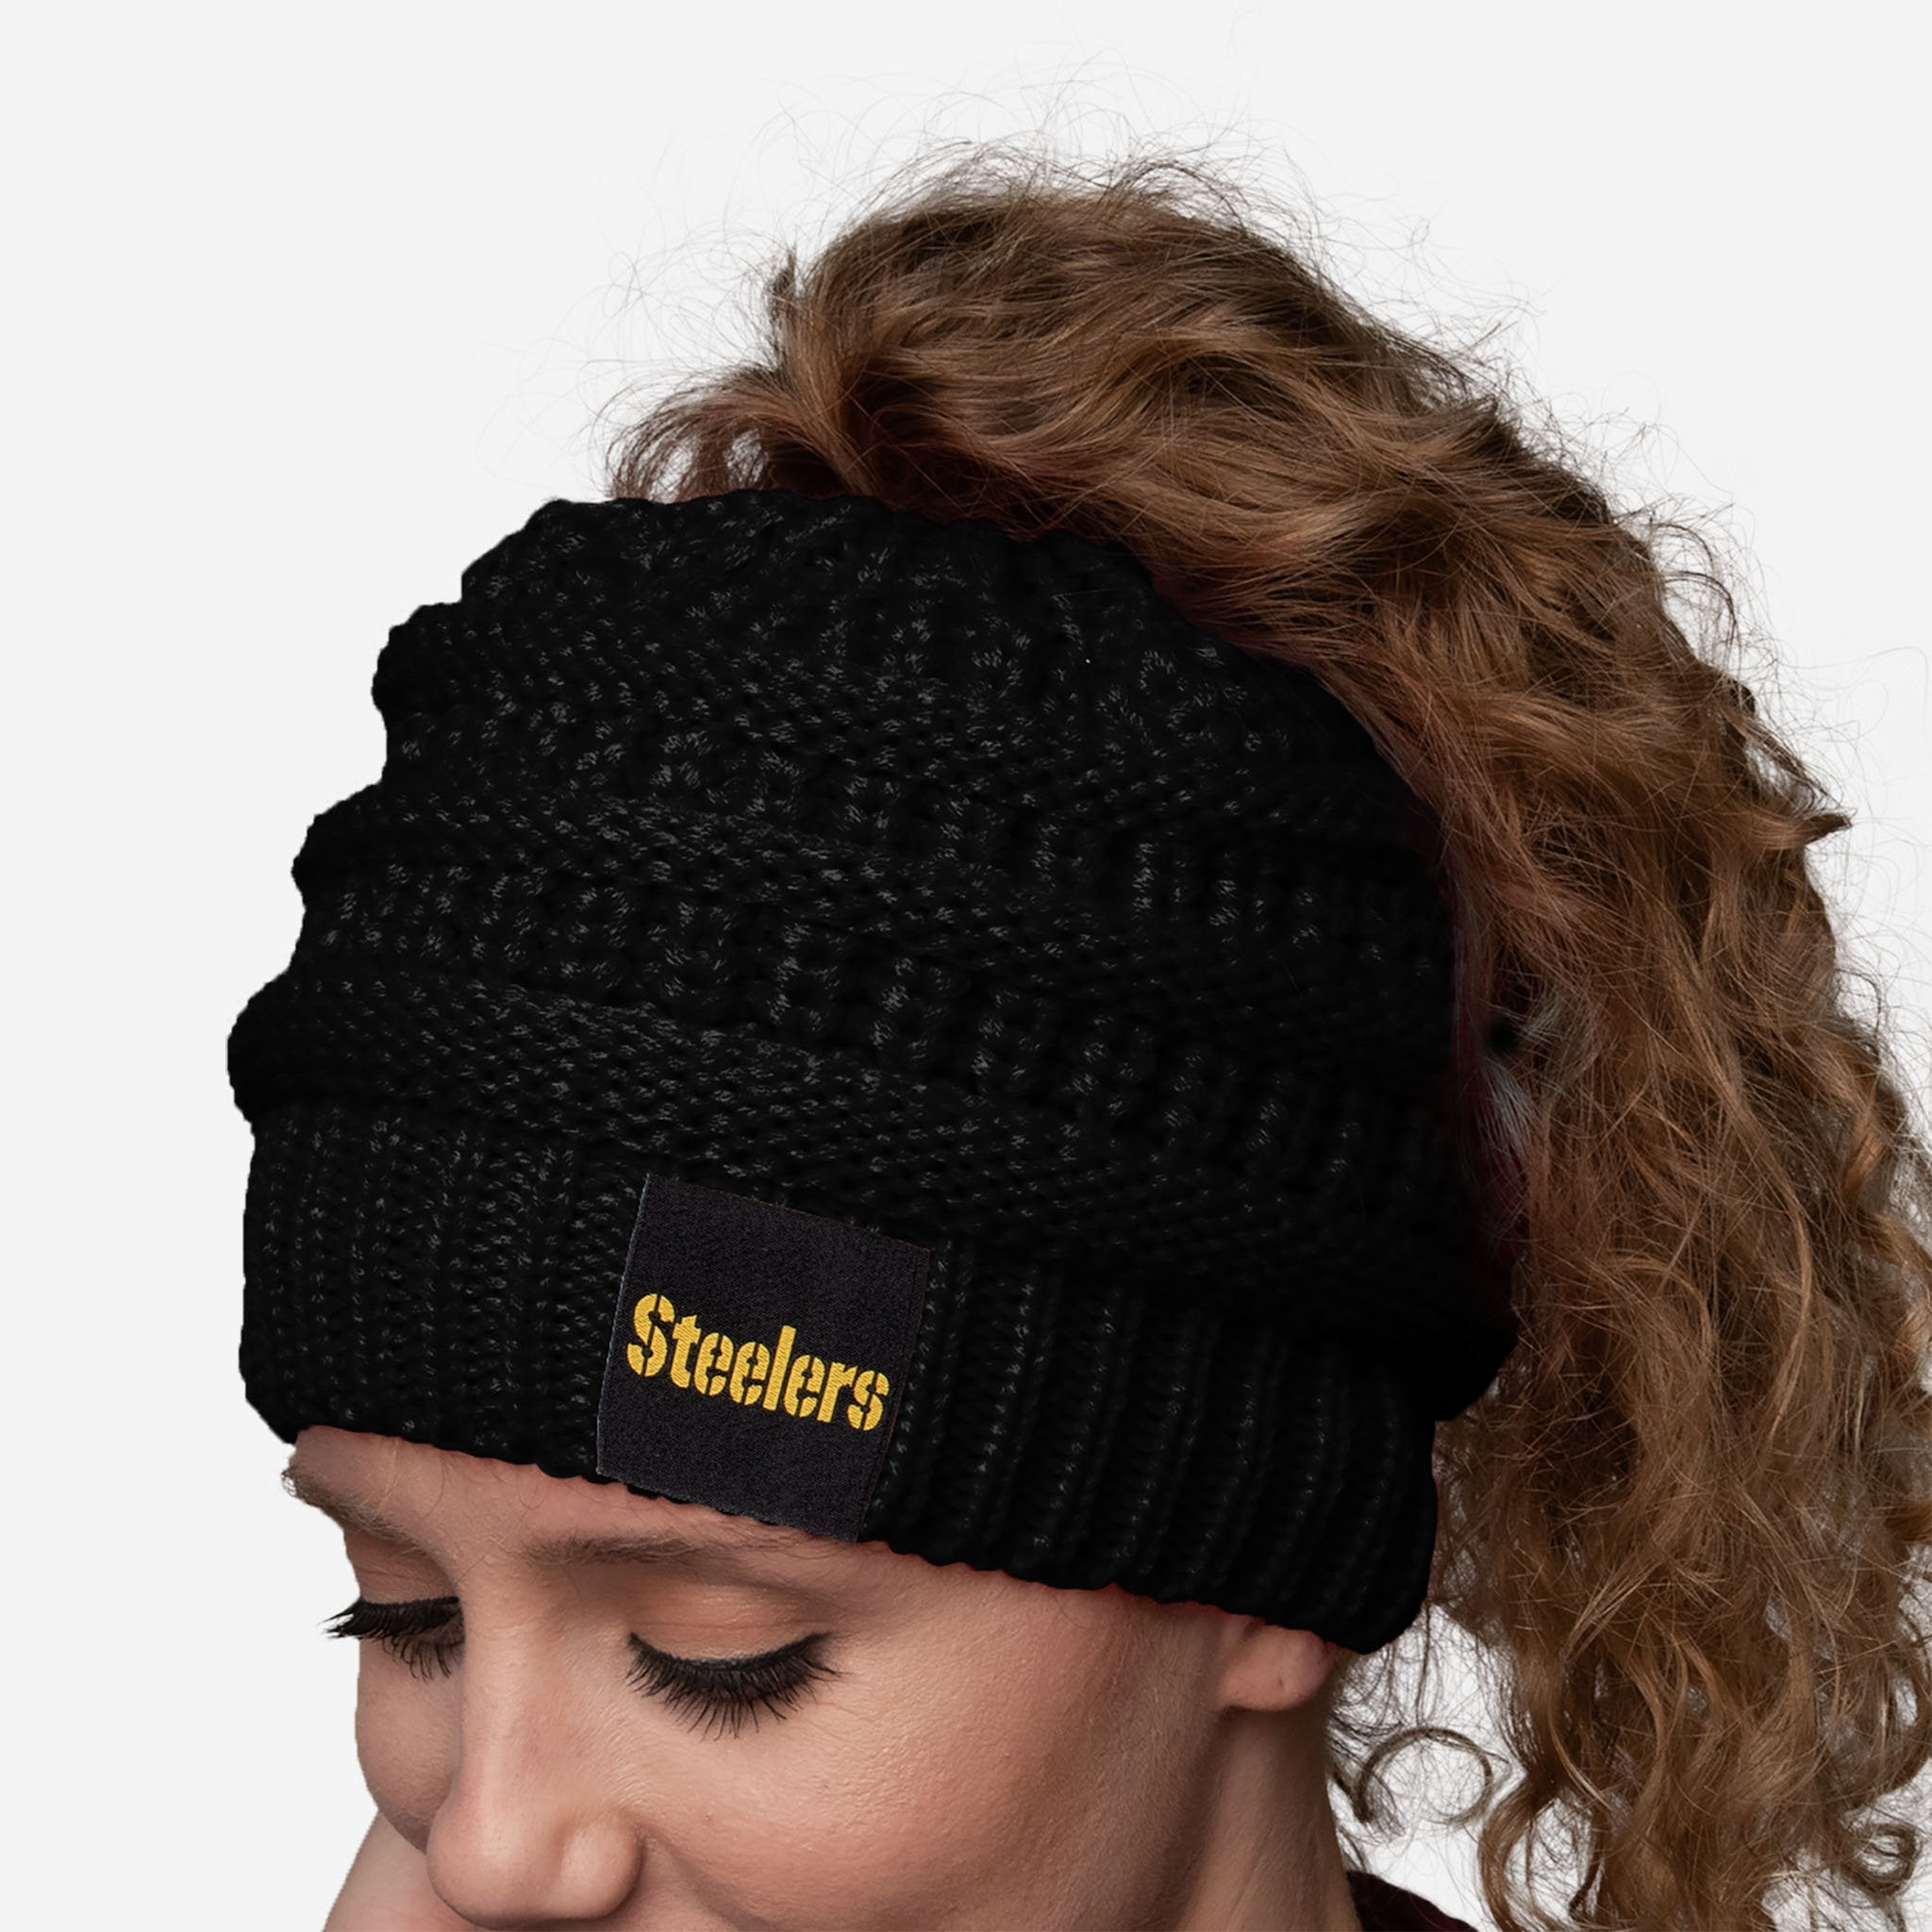 online store cf1ce 0108d ... womens ponytail beanie foco f3406 3f91a sale pittsburgh steelers womens  ponytail beanie foco f3406 3f91a  australia fc dallas mls knit cap womens 47  ...